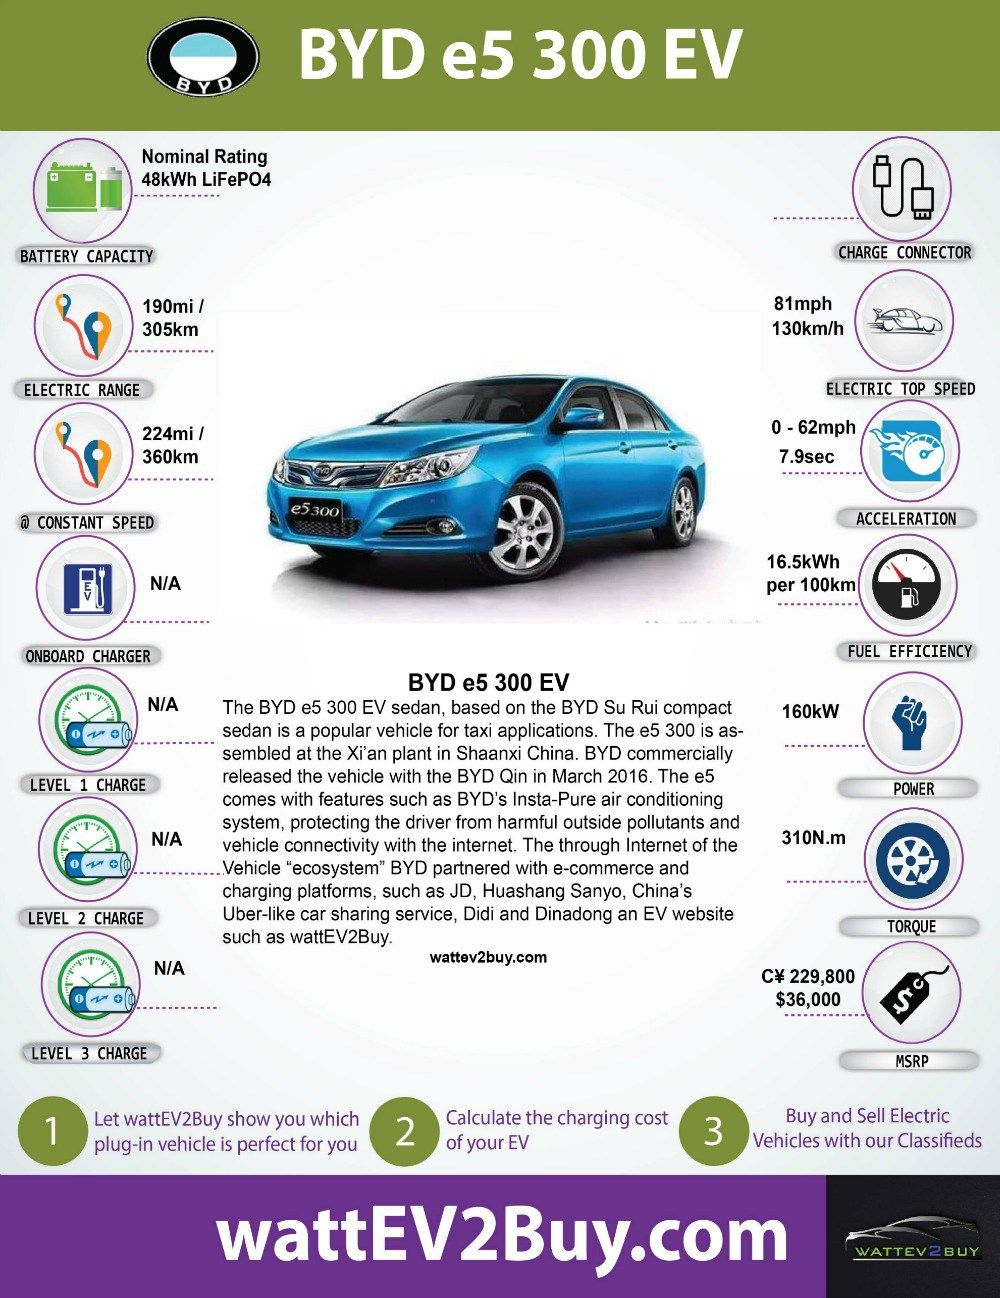 byd e5 300 ev performance specifications and more